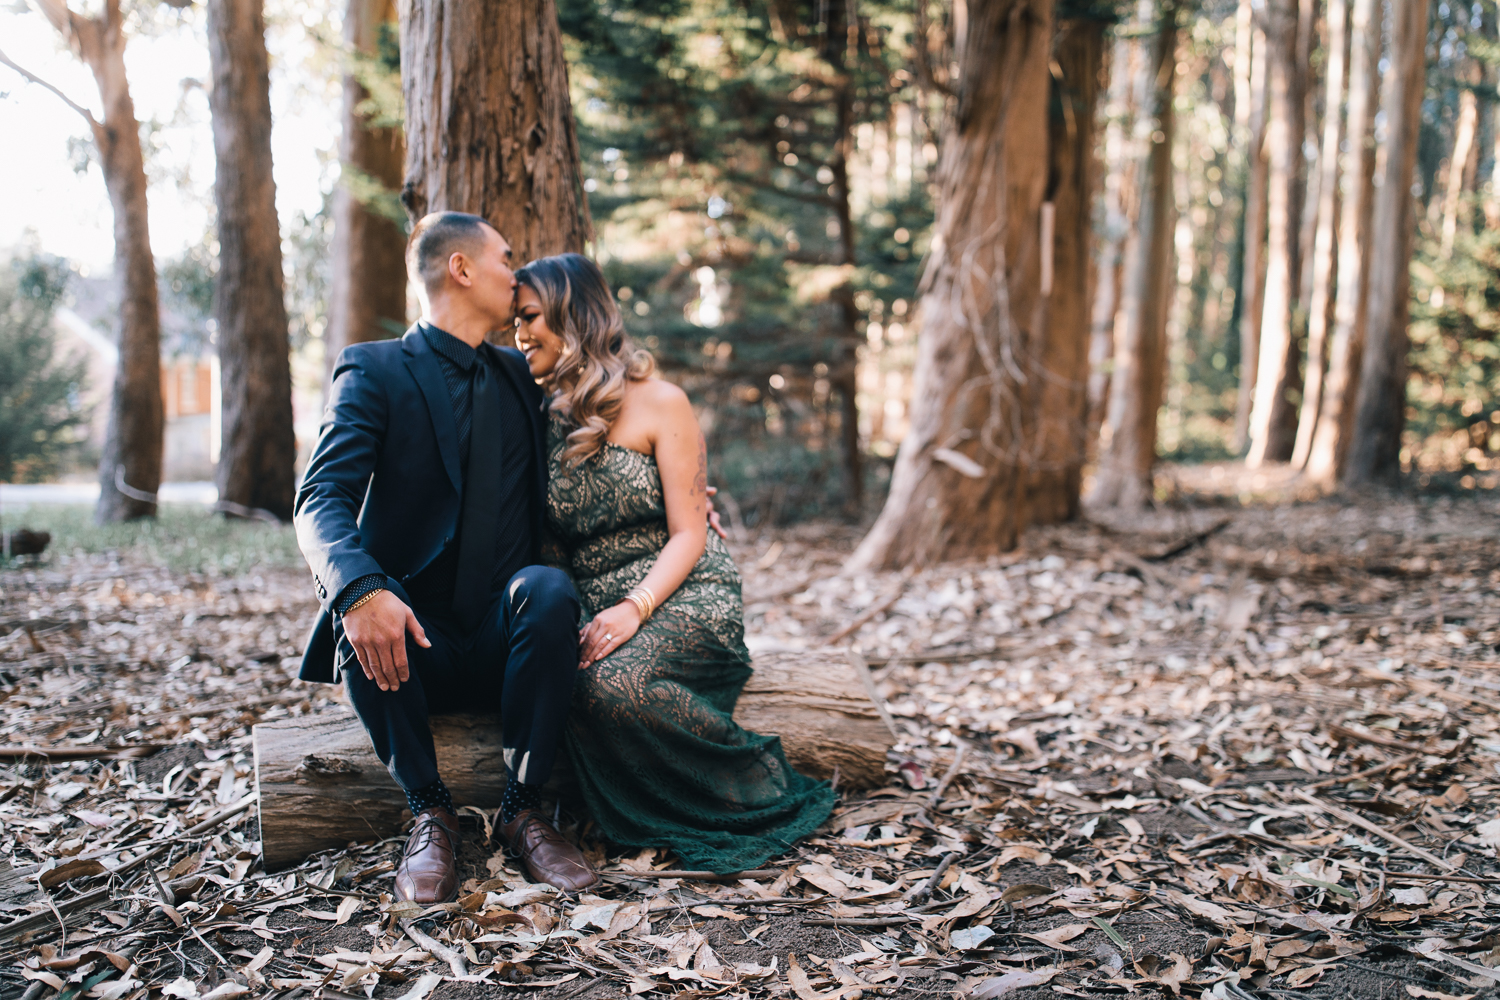 2018_11_ 042018.11.4 Leah + Ed Engagement Session Blog photos Edited For Web 0048.jpg